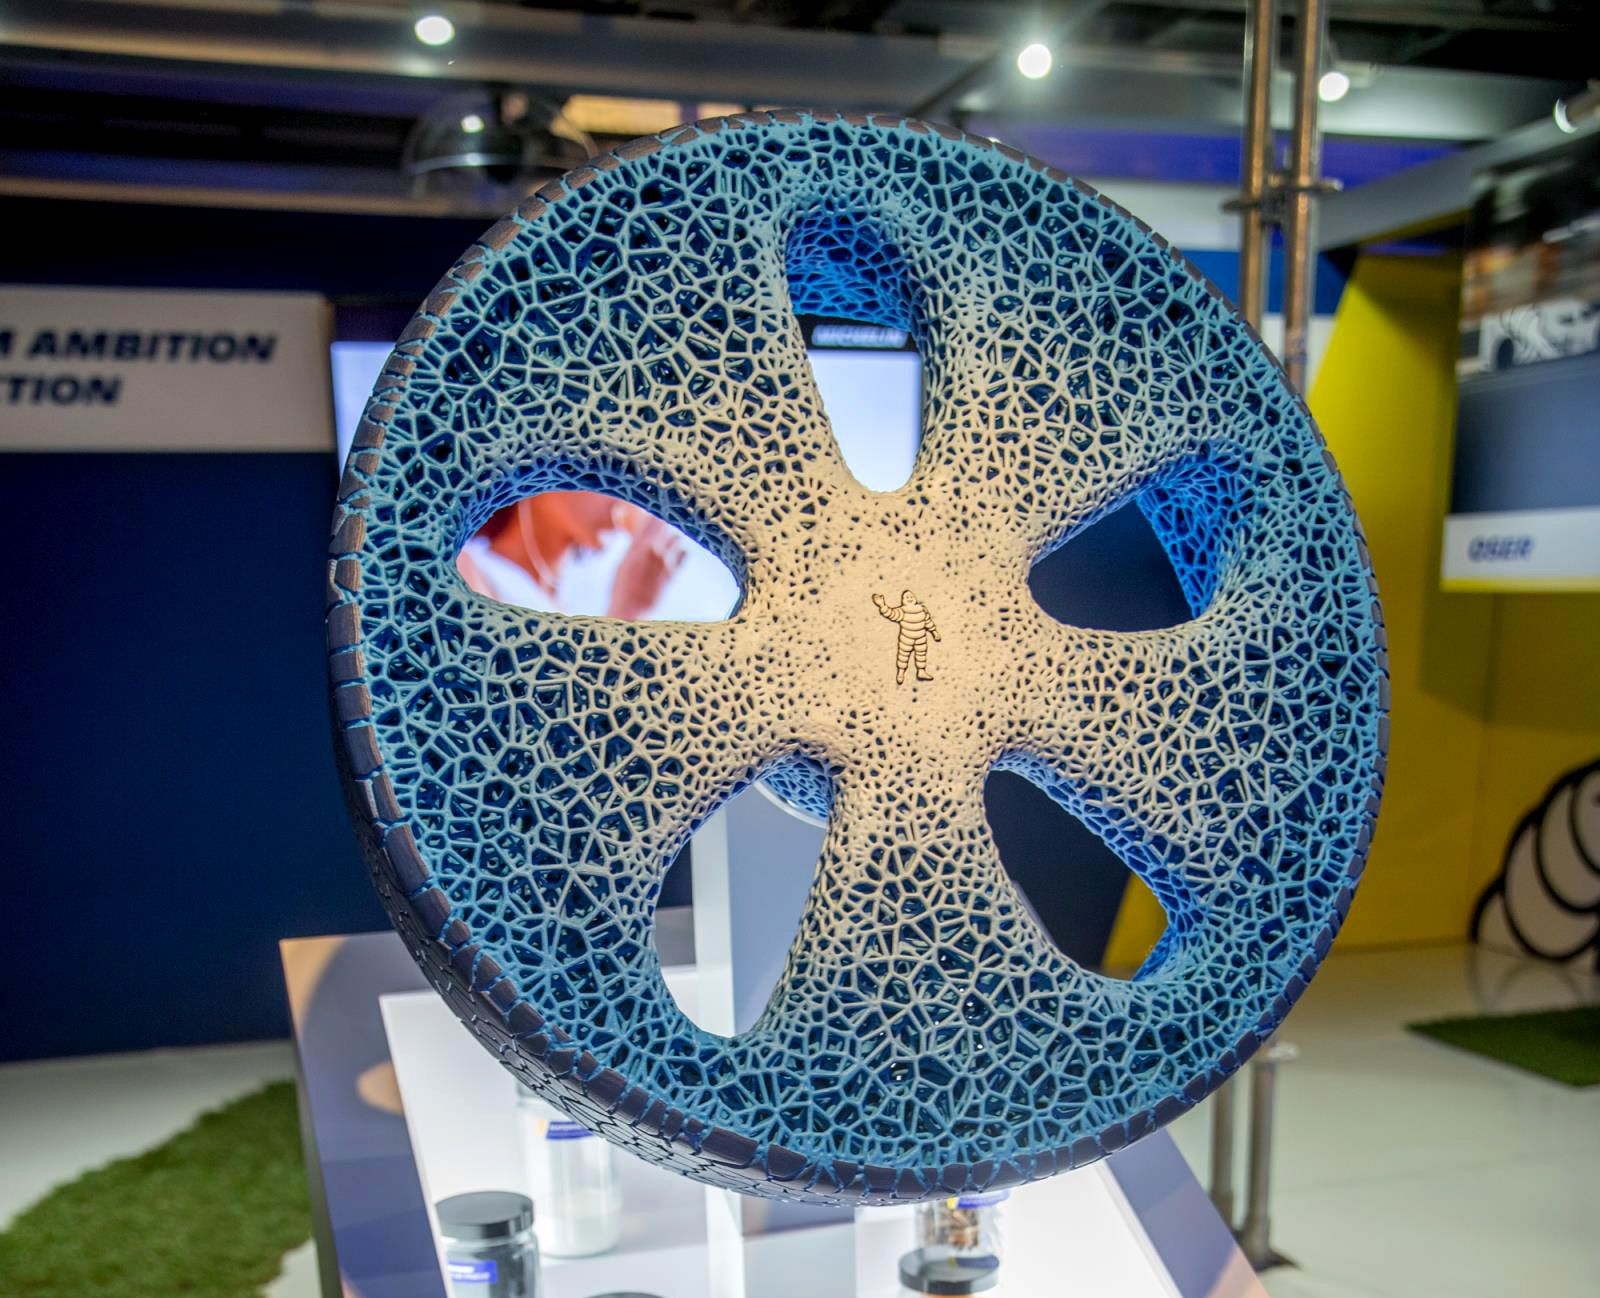 michelin invision a puncture-free future, combining airless tire and wheel  into one 3d